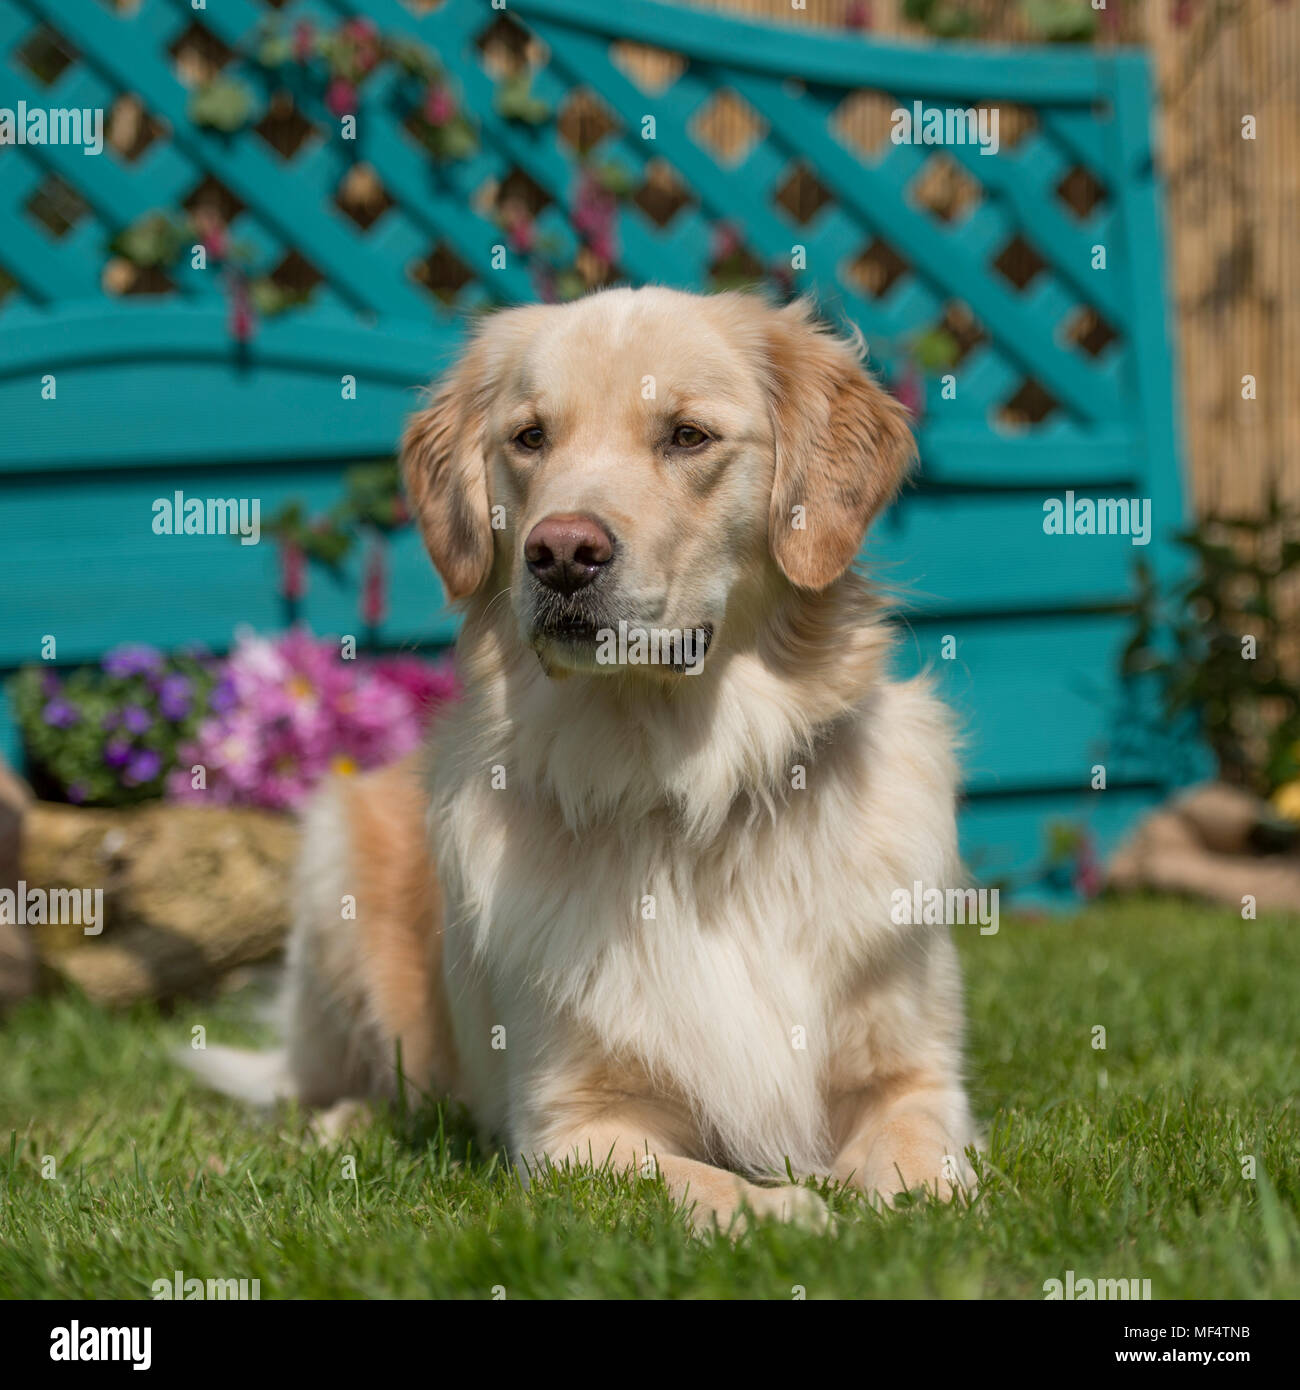 golden retriever - Stock Image